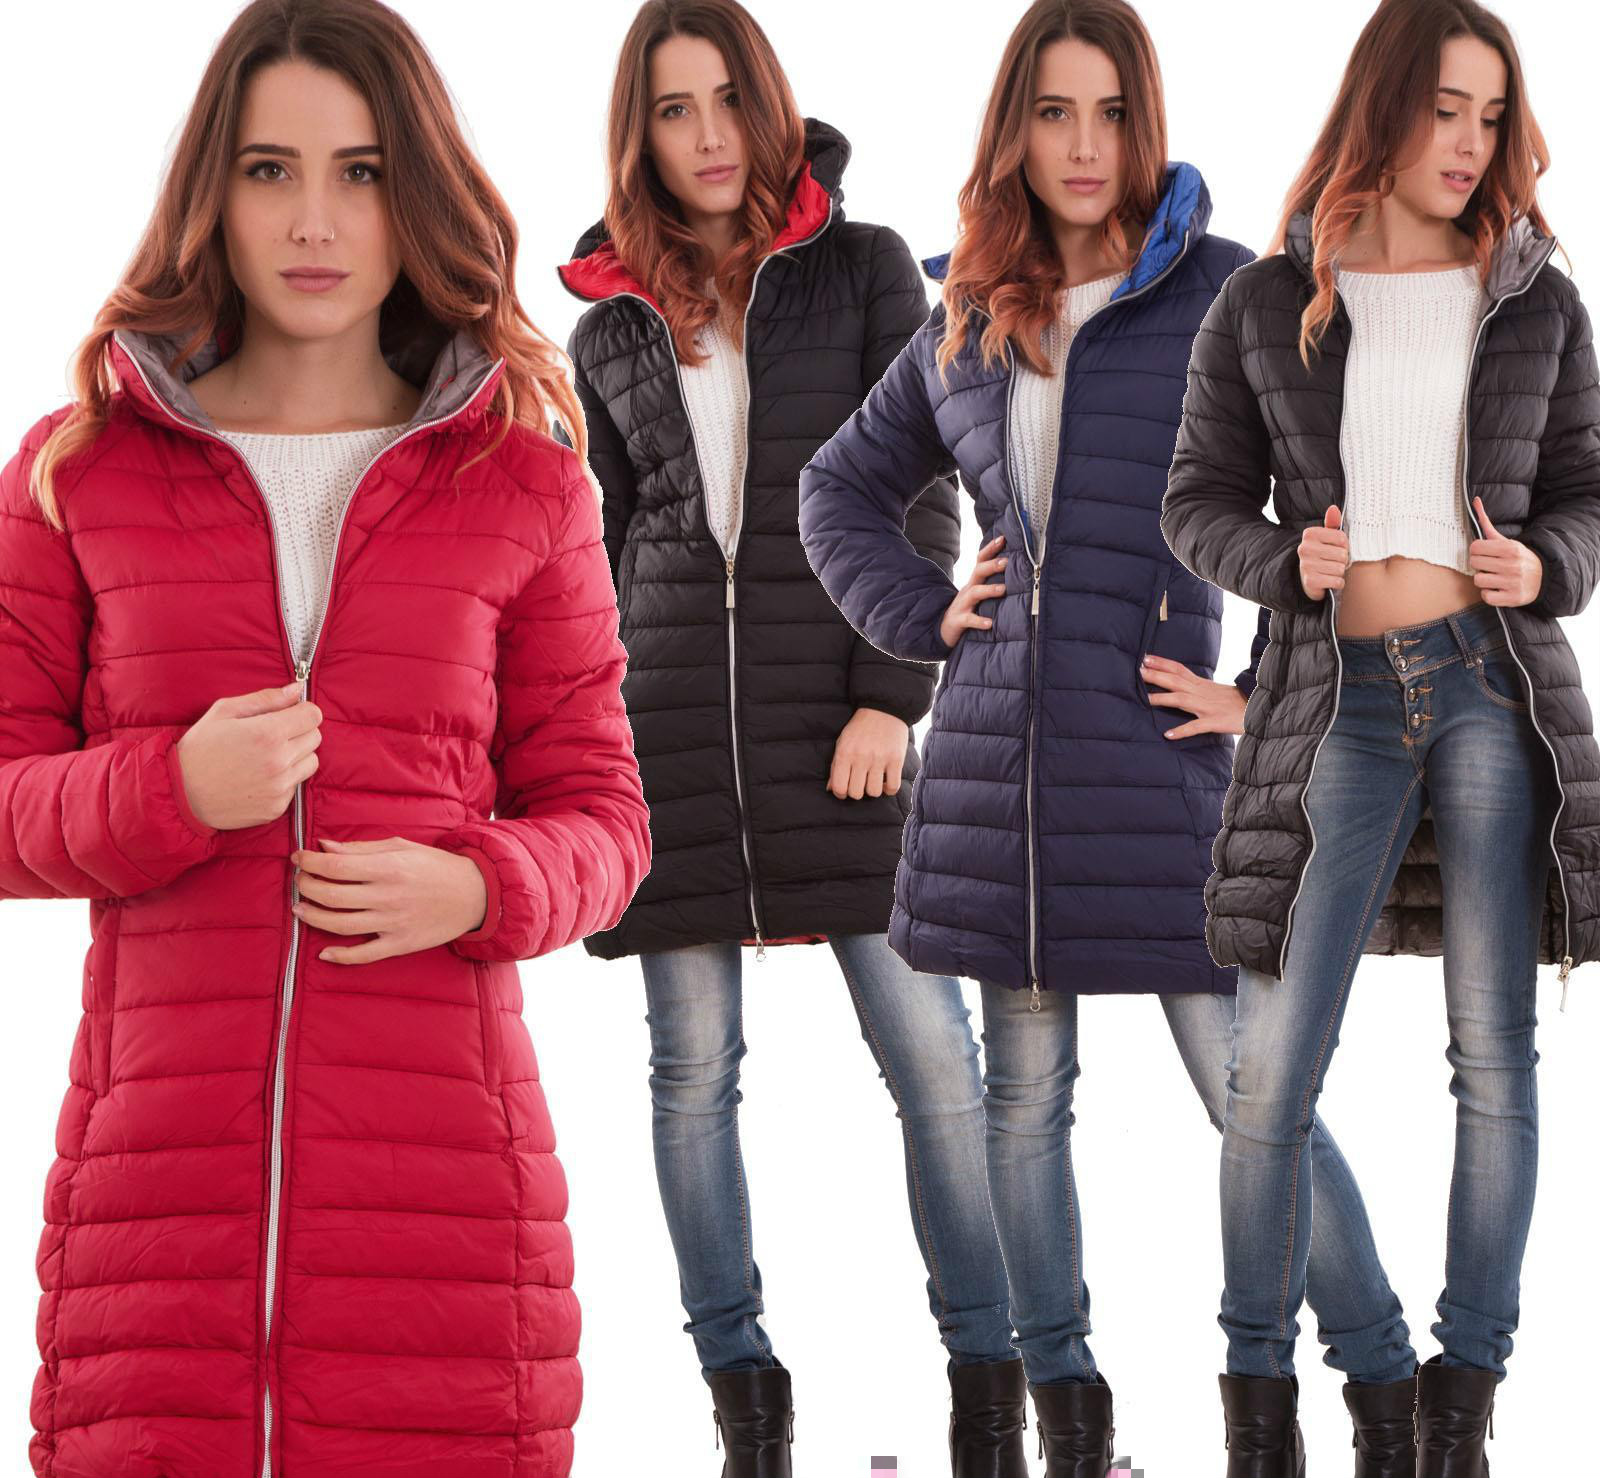 ZOGAA Long Section Winter Coat Casual Fashion Hooded Coat Women 2019 New  Women Winter Coat 4 Colors Puffer Jacket Warm Parkas